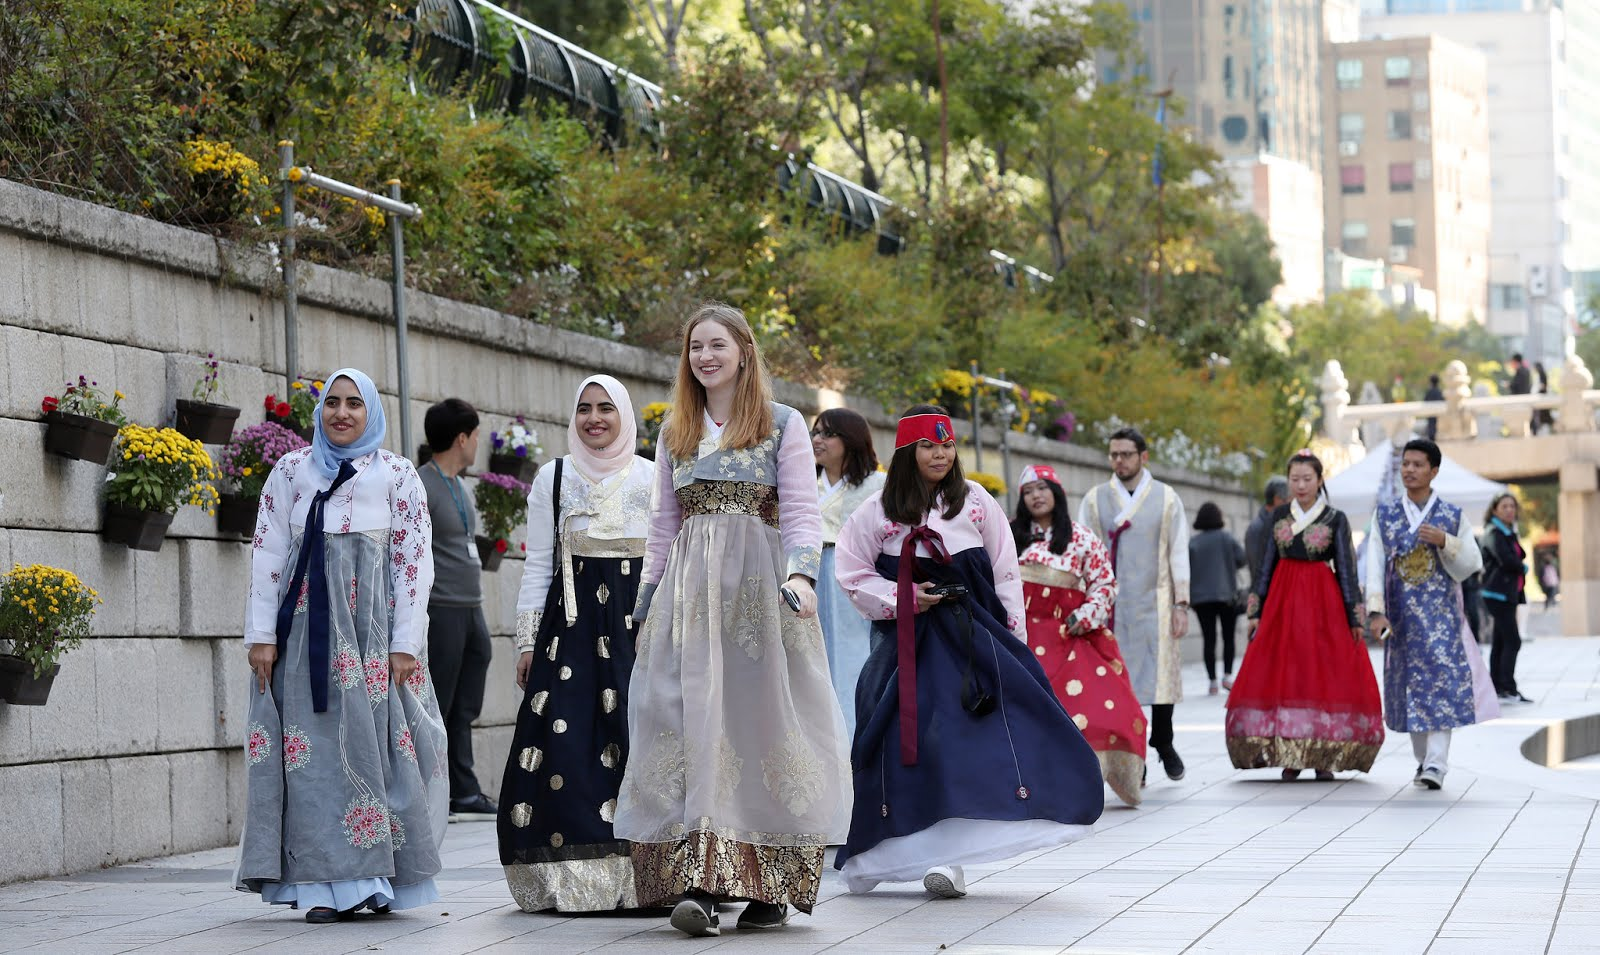 With our hanbok on, we had an awesome experience walking along the famous Cheonggye Stream in downtown Seoul.